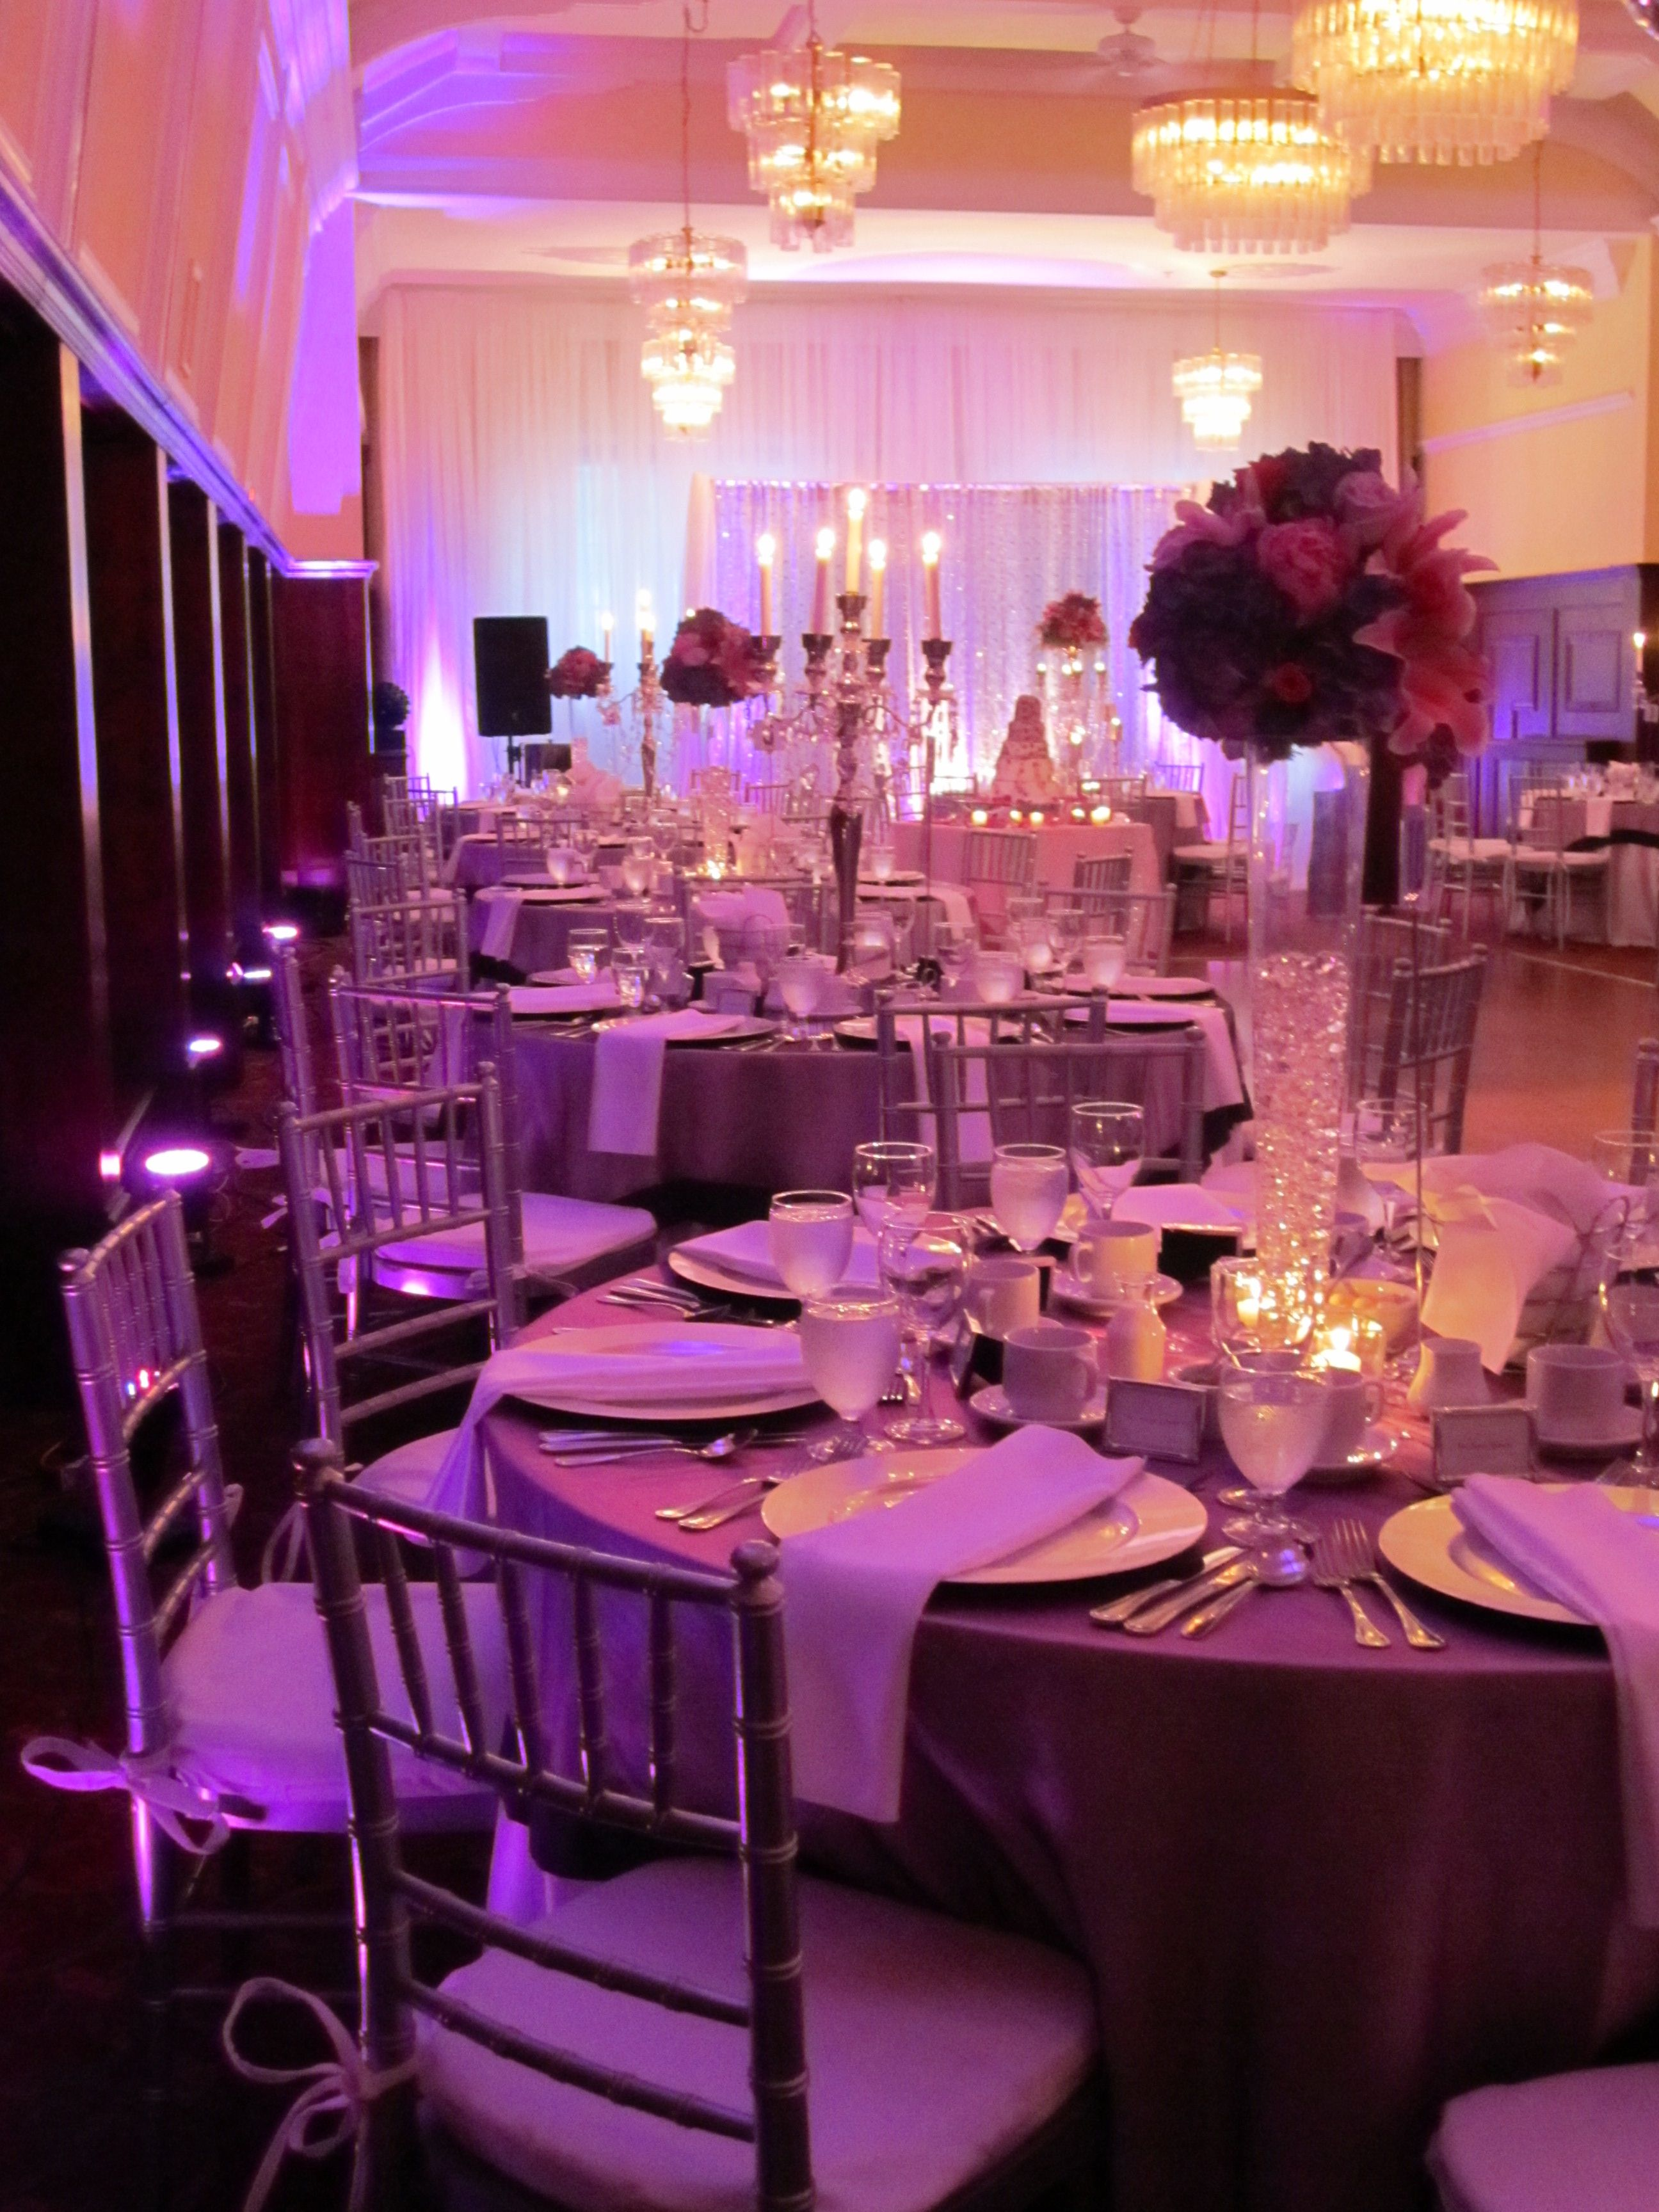 Wow. Silver wedding decor with purple uplighting and white drapes ...